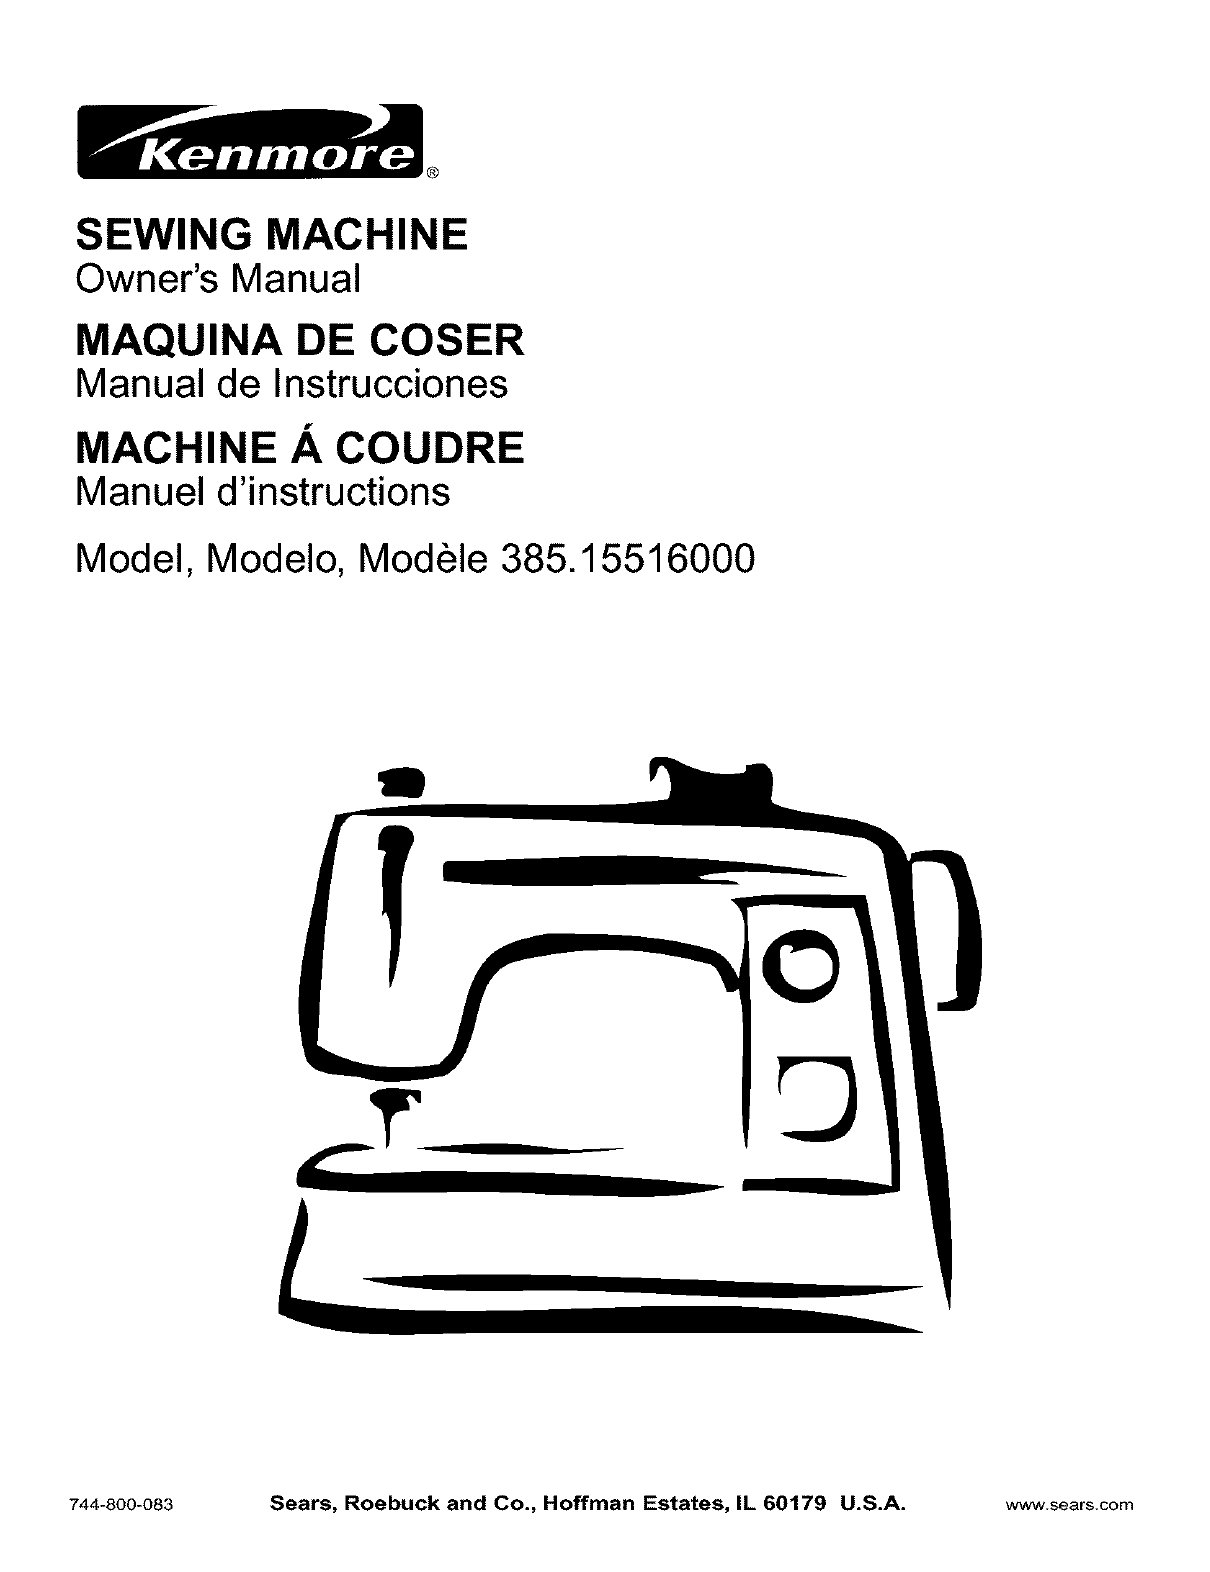 kenmore sewing machine 385 15516 user guide manualsonline com rh homeappliance manualsonline com sears kenmore owners manuals online sears kenmore washer owners manual